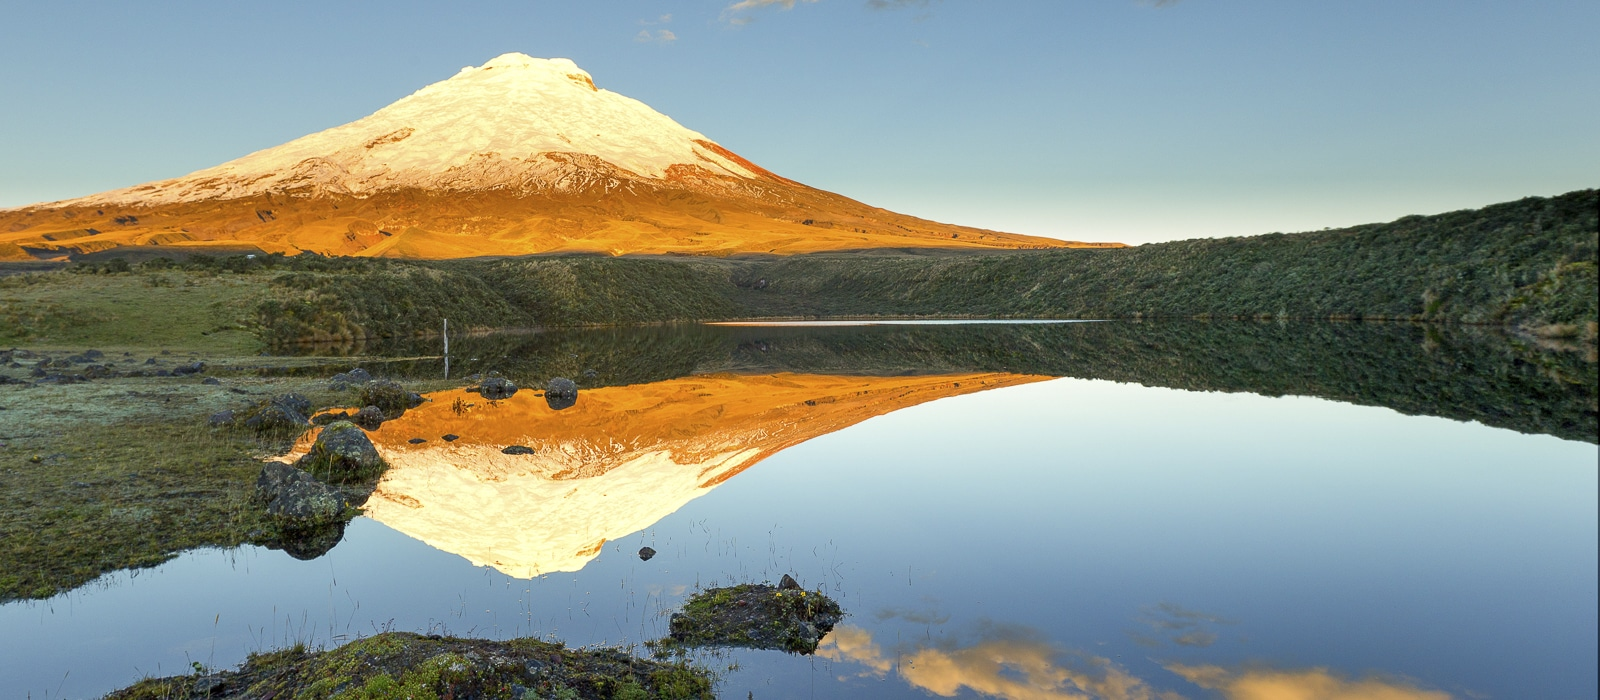 img-diapo-entete - Equateur-1600x700-12.jpg